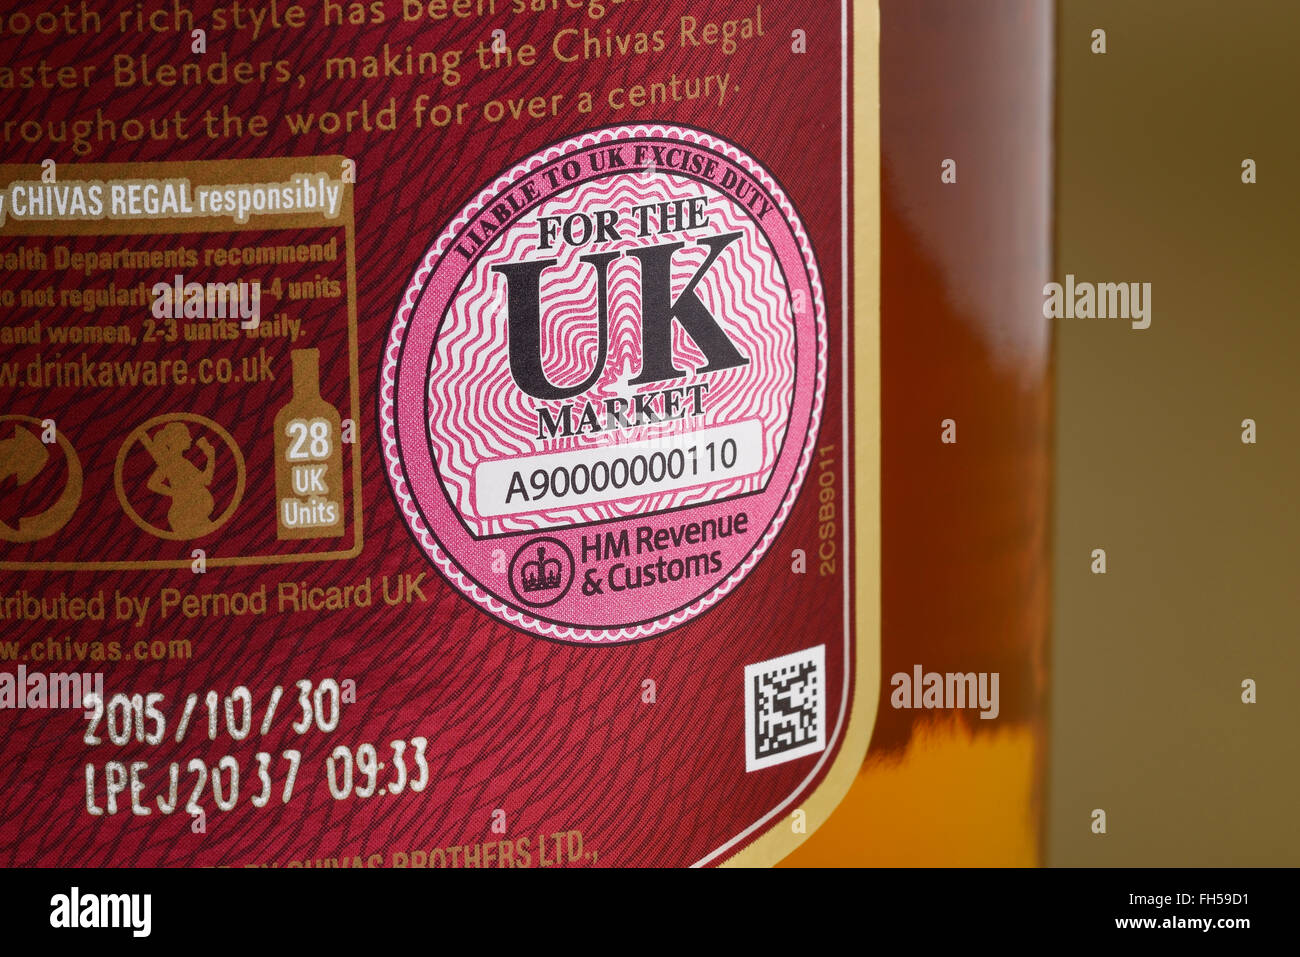 Close up of the UK HM Revenue and Customs Excise Duty seal on a bottle of whisky - Stock Image